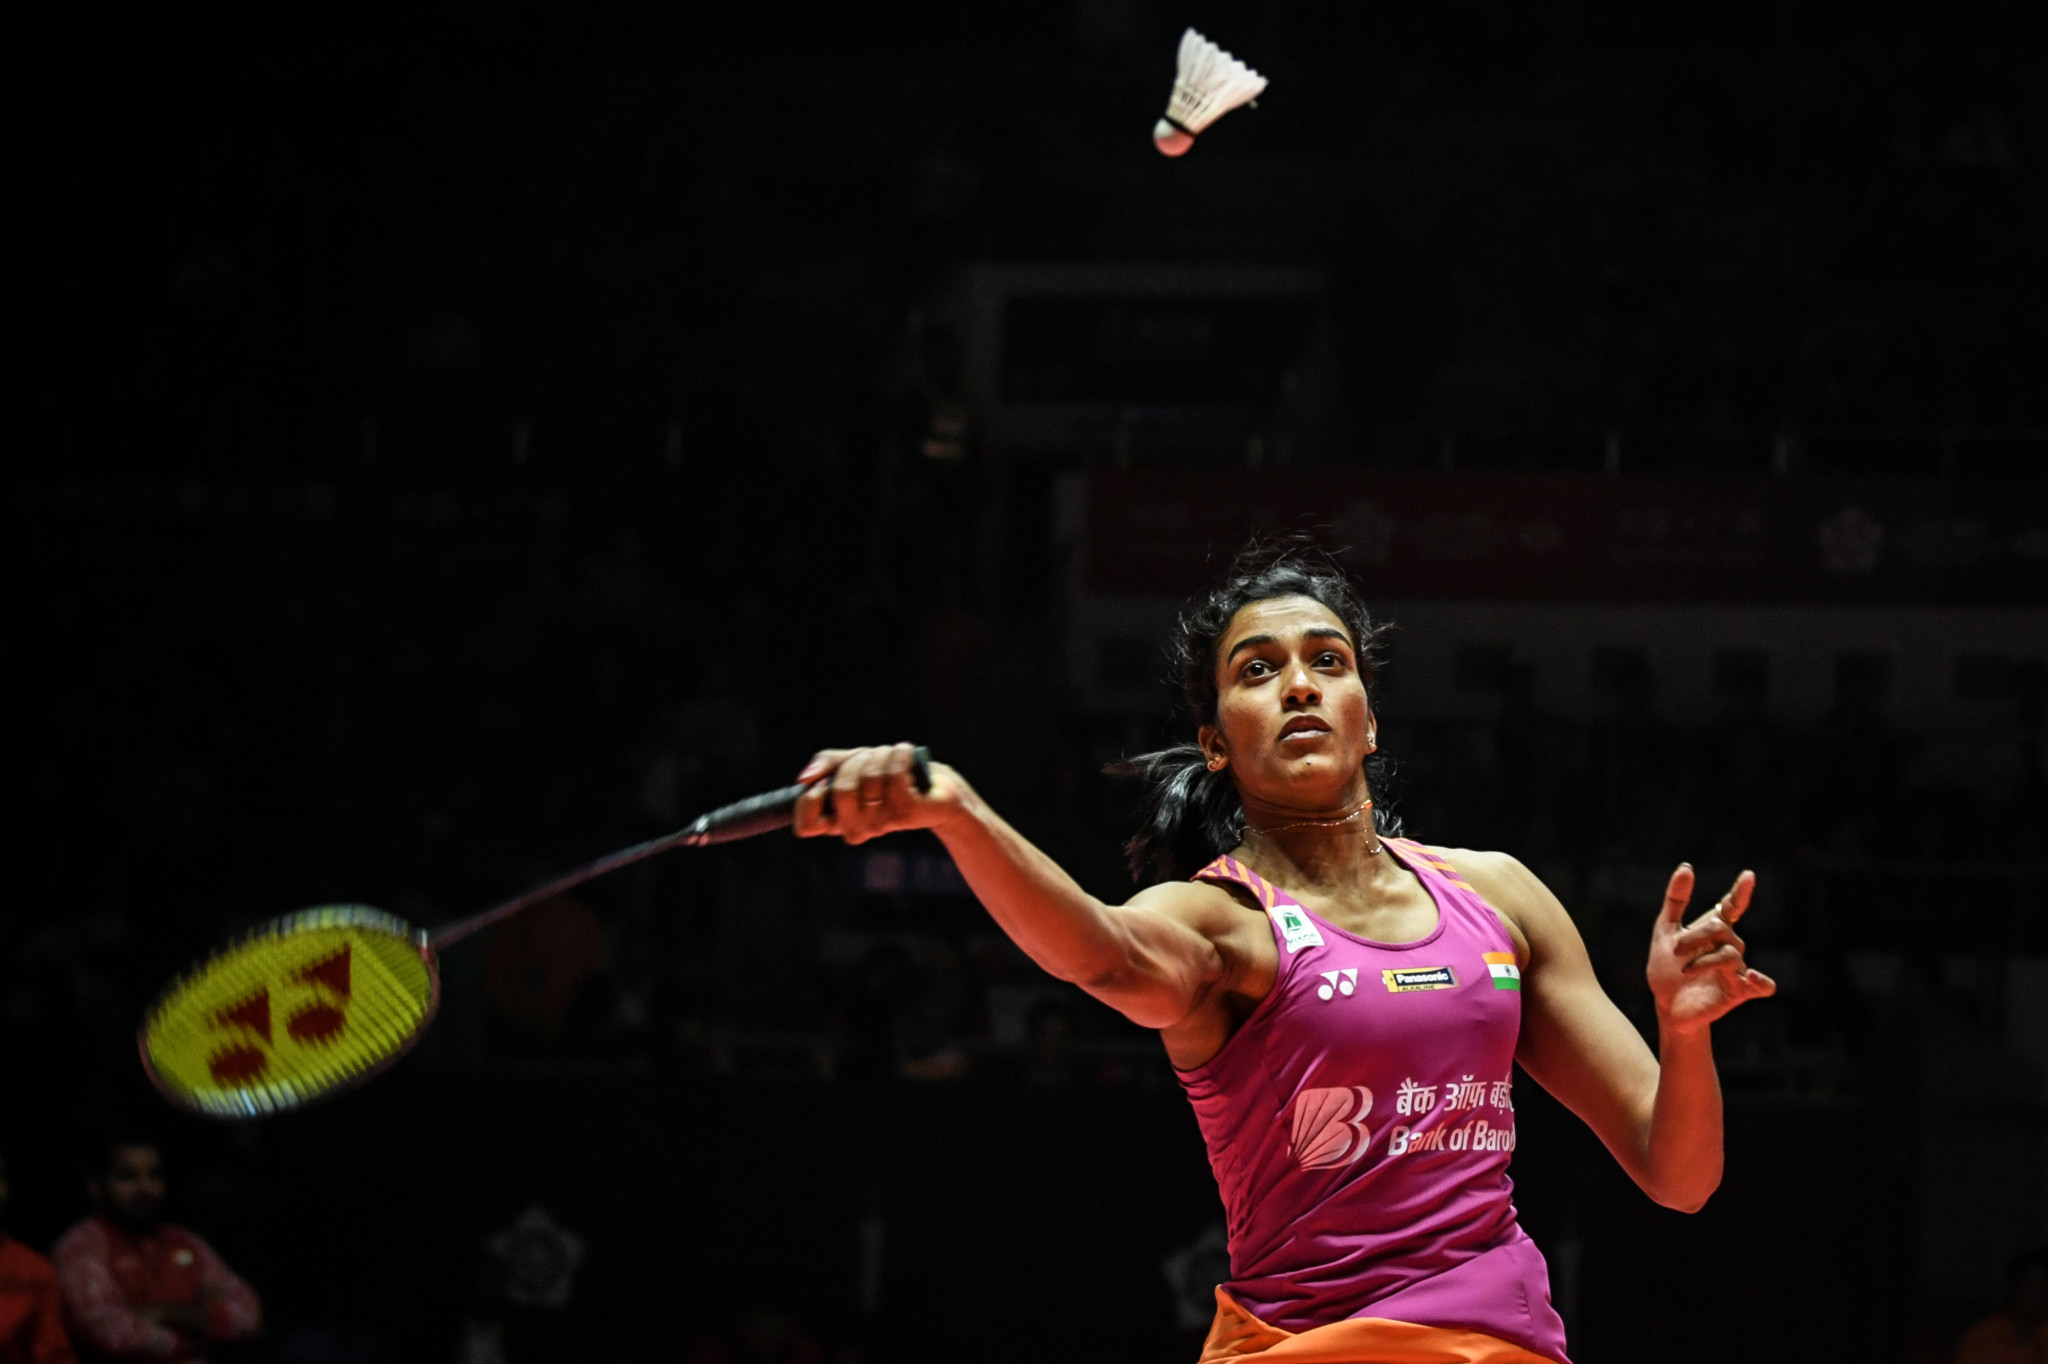 BWF World Tour Finals winner PV Sindhu said reducing the amount of tournaments would benefit the sport and the players ©Getty Images